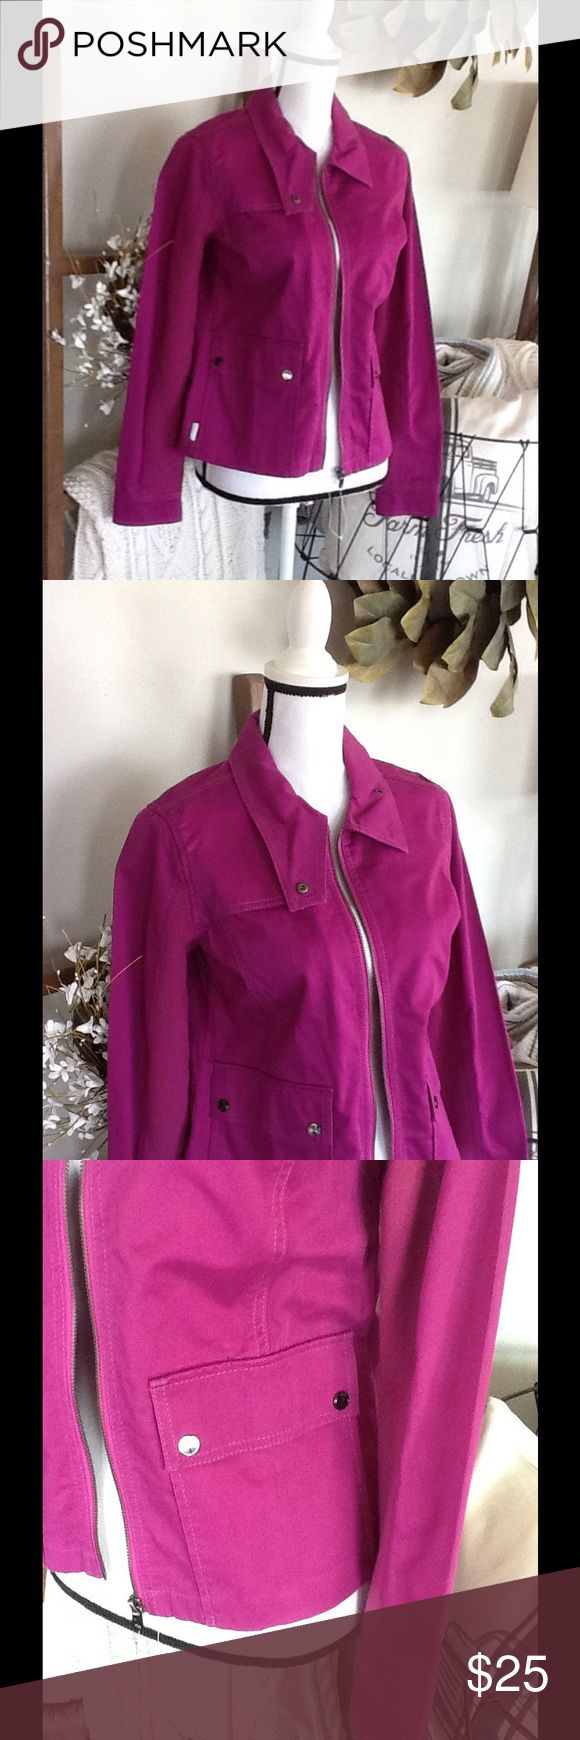 NEW LISTING: NWOT Lole' purple jacket Fits like a medium but is missing the size tag. Lole Jackets & Coats